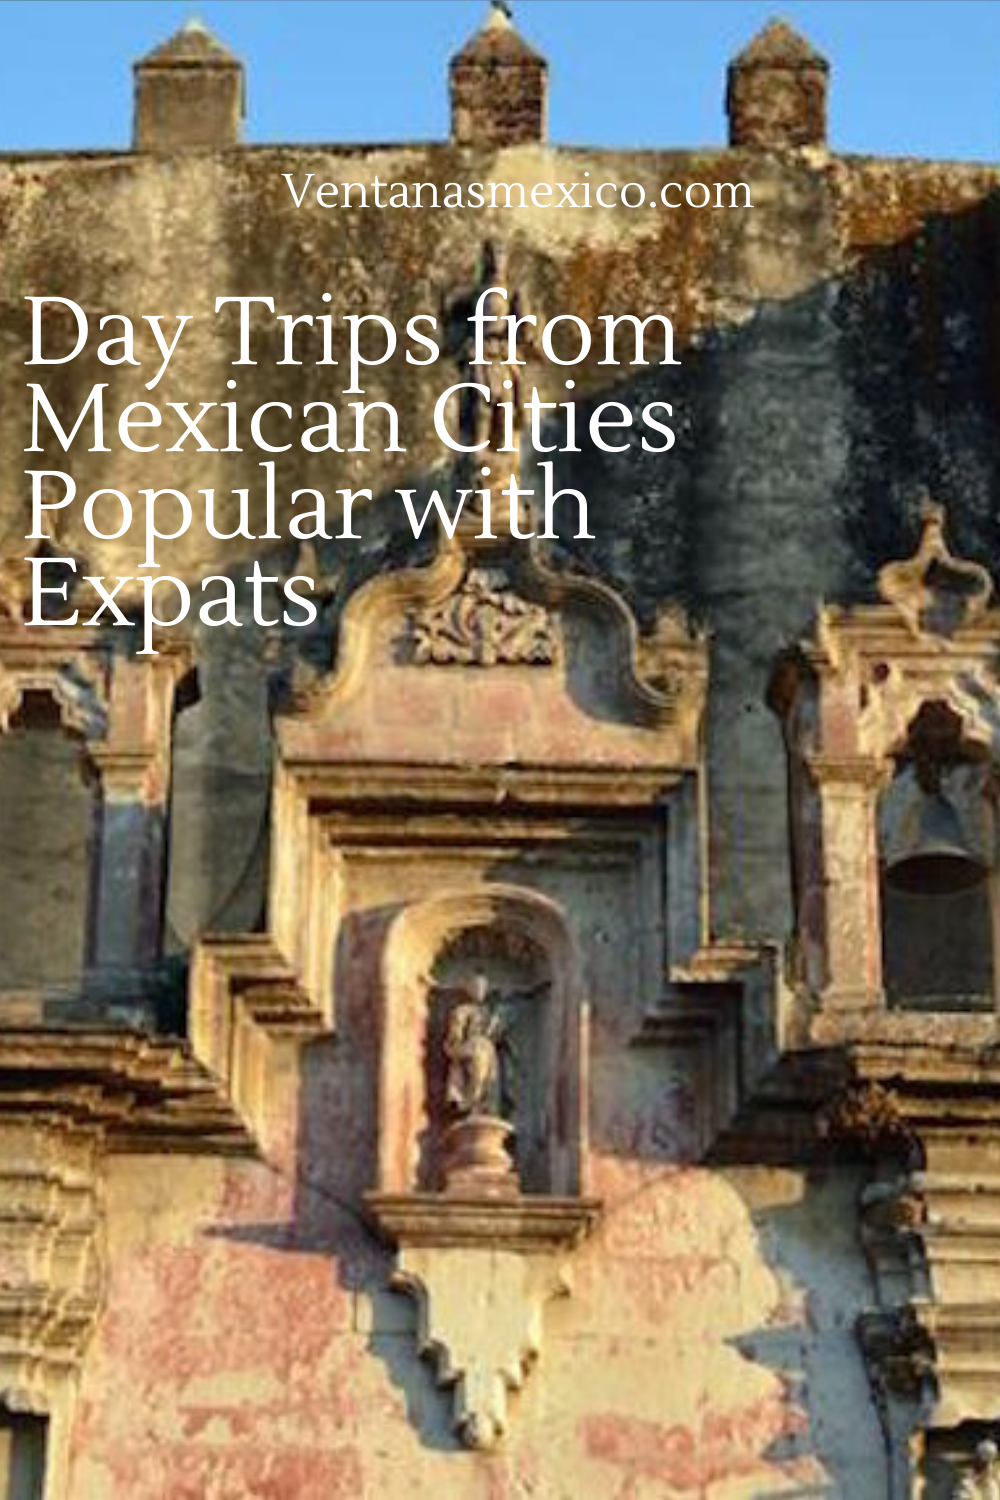 Day Trips From Cities In Mexico Most Popular With Expats Ventanas Mexico Day Trips Trip Mexico